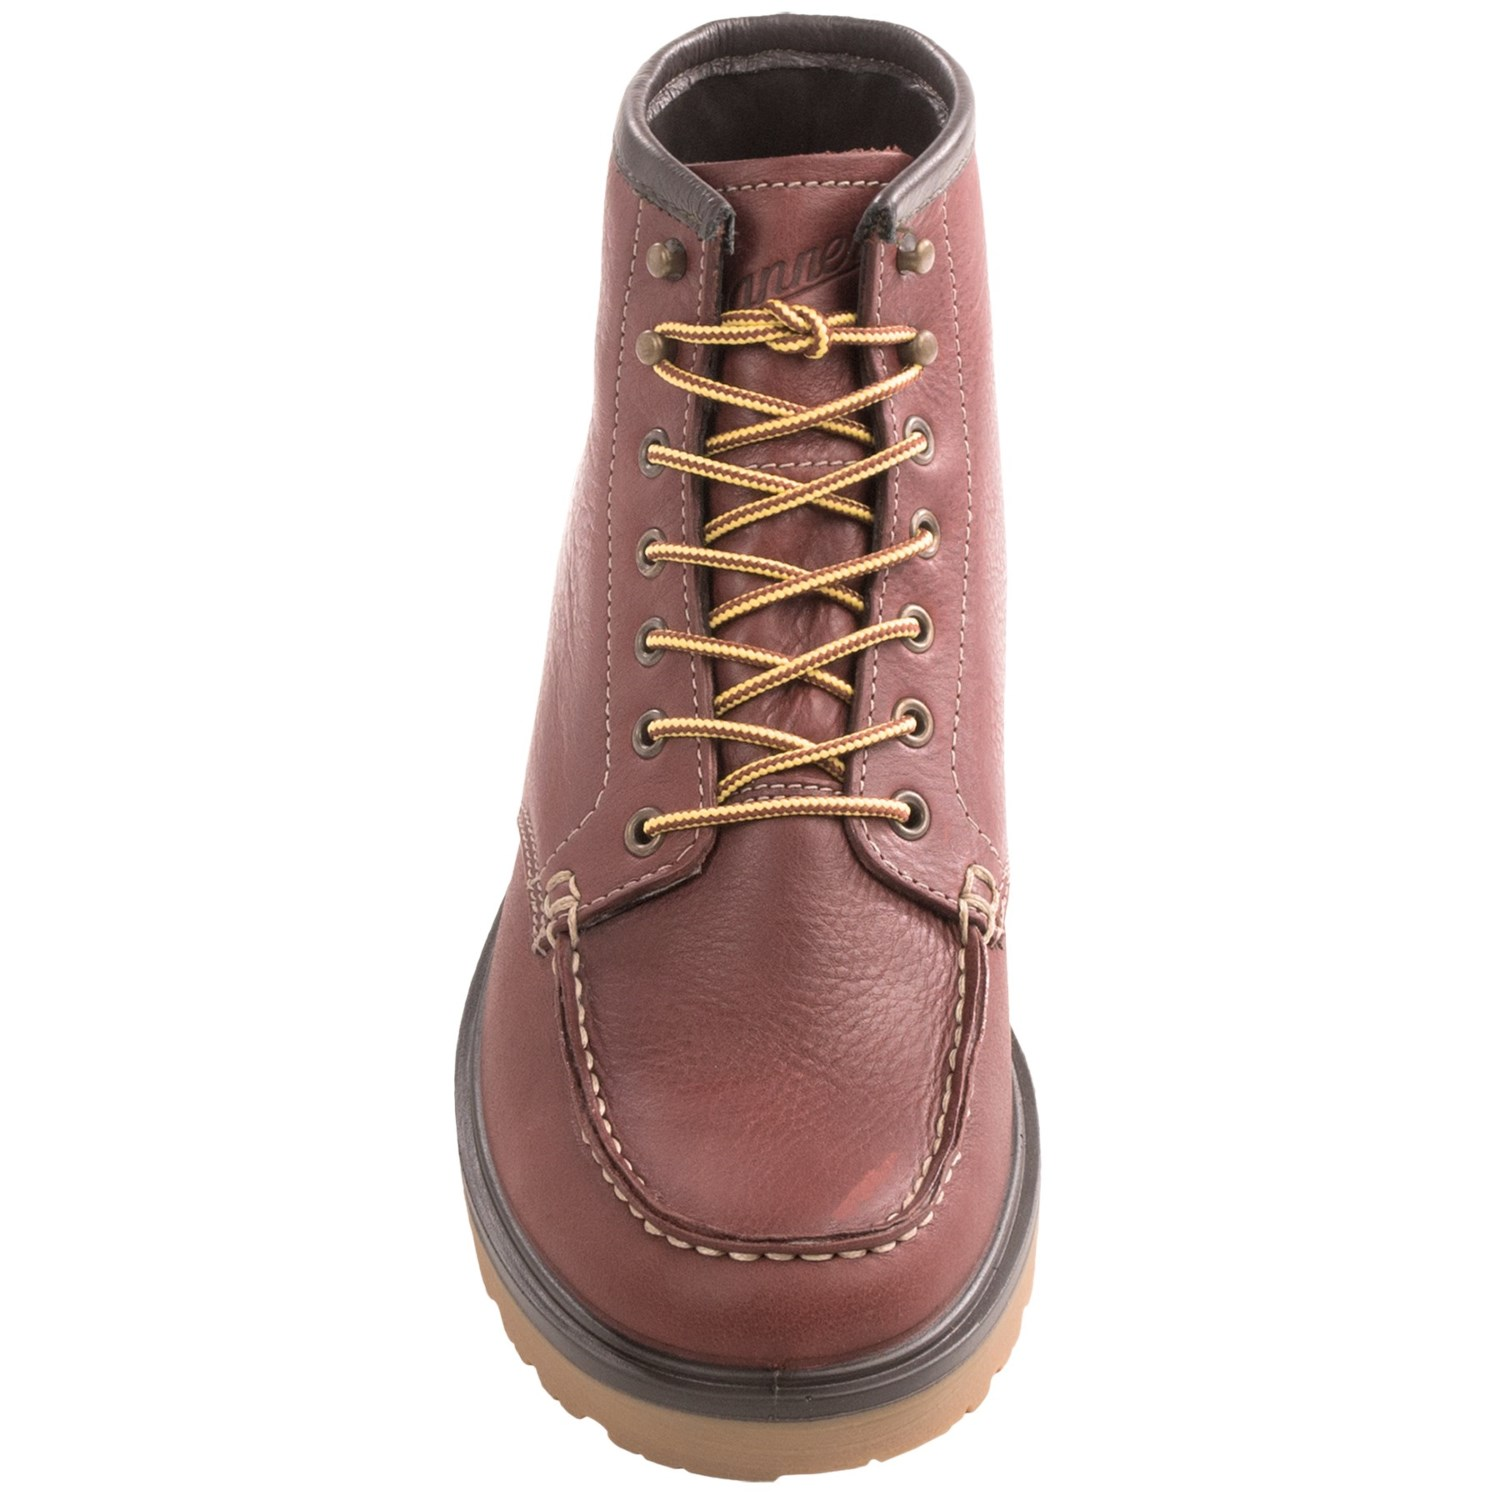 Danner Work Boots For Men